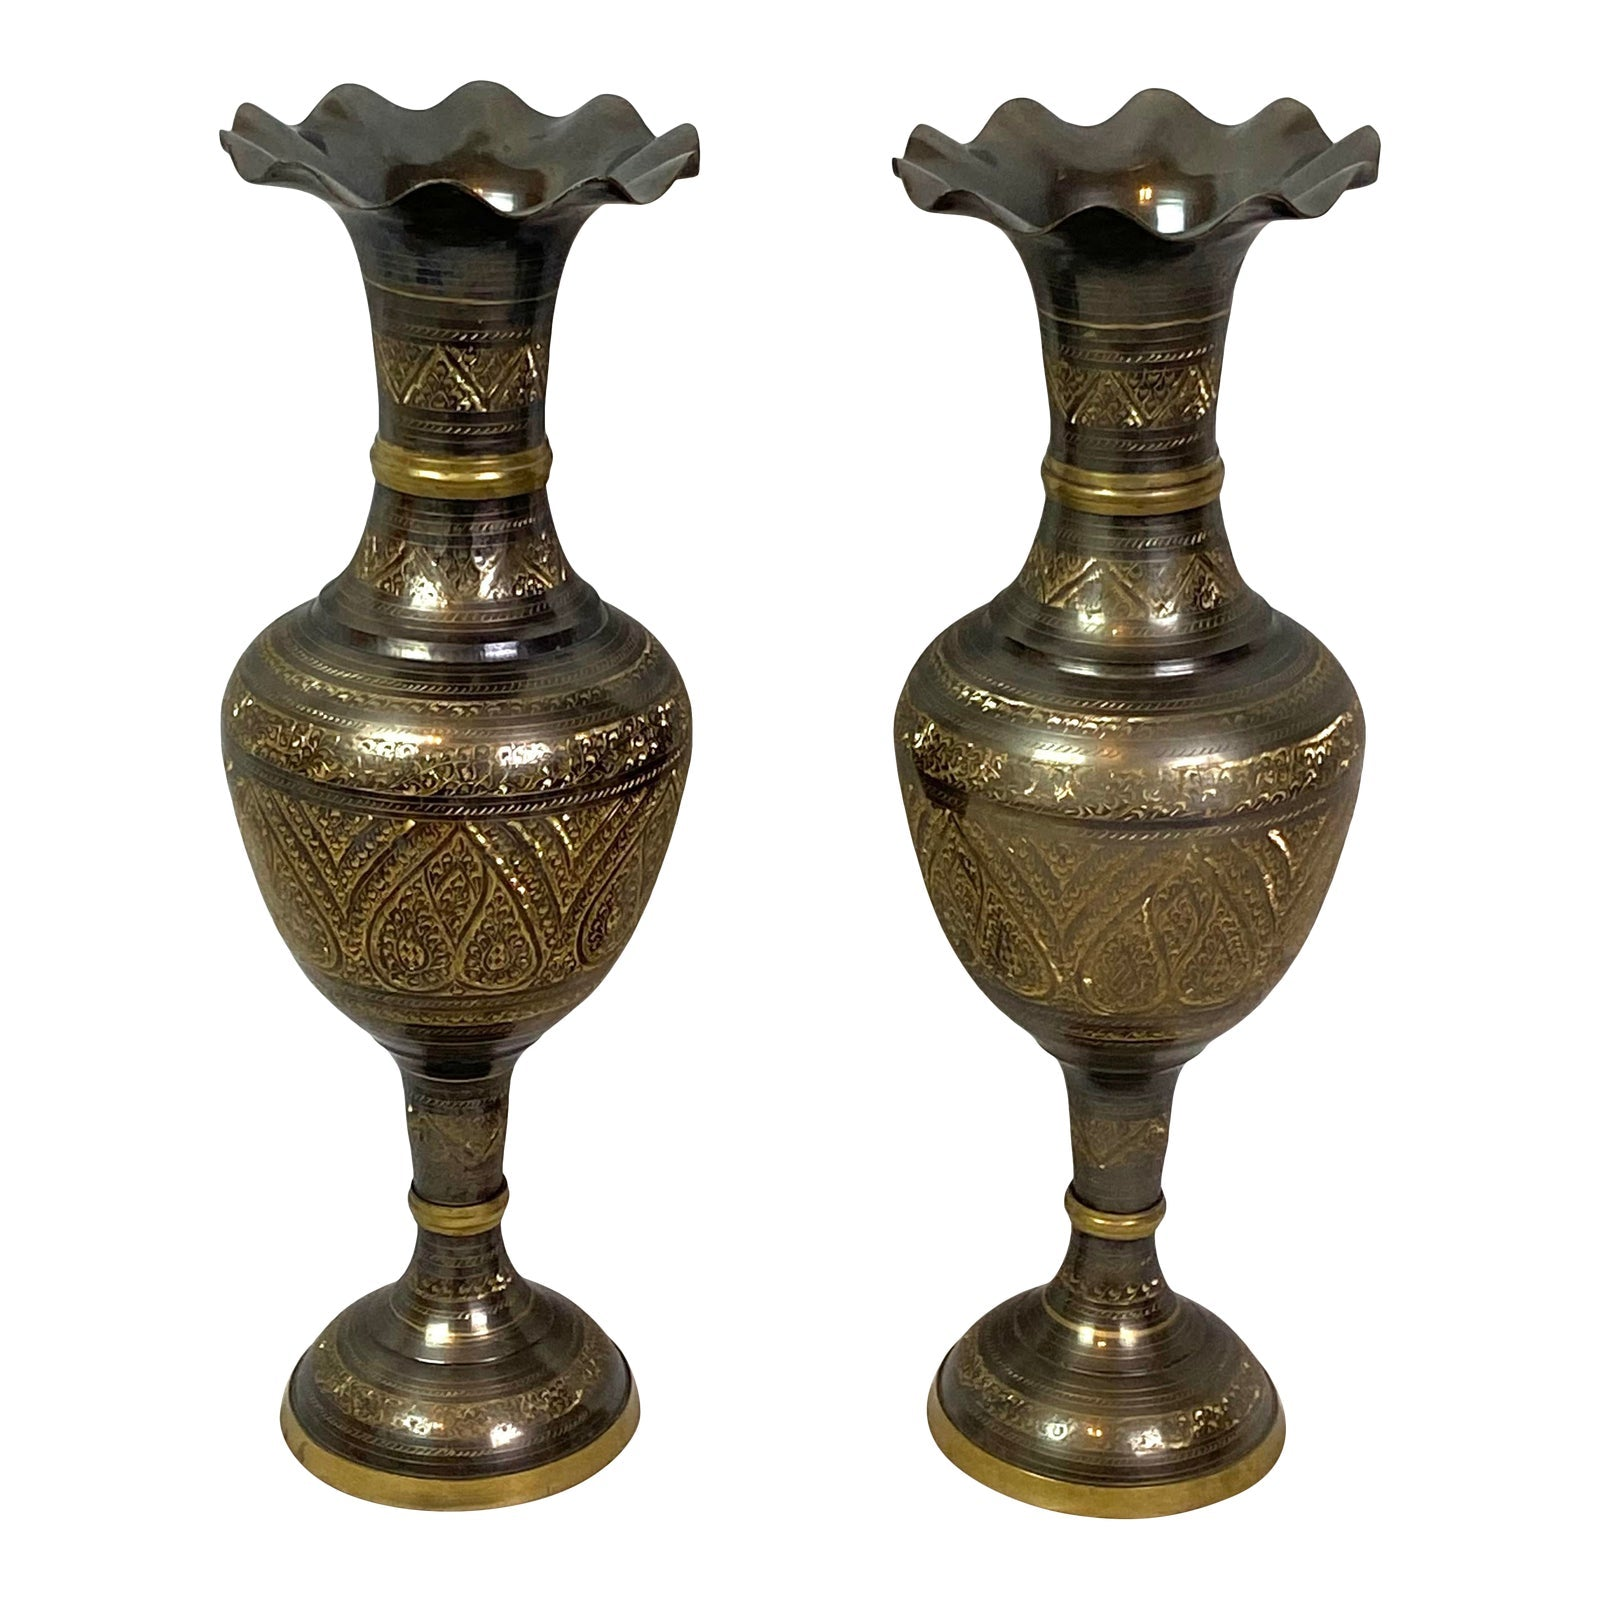 Bronze Medieval Middle Eastern Urns Vases - Pair of 2